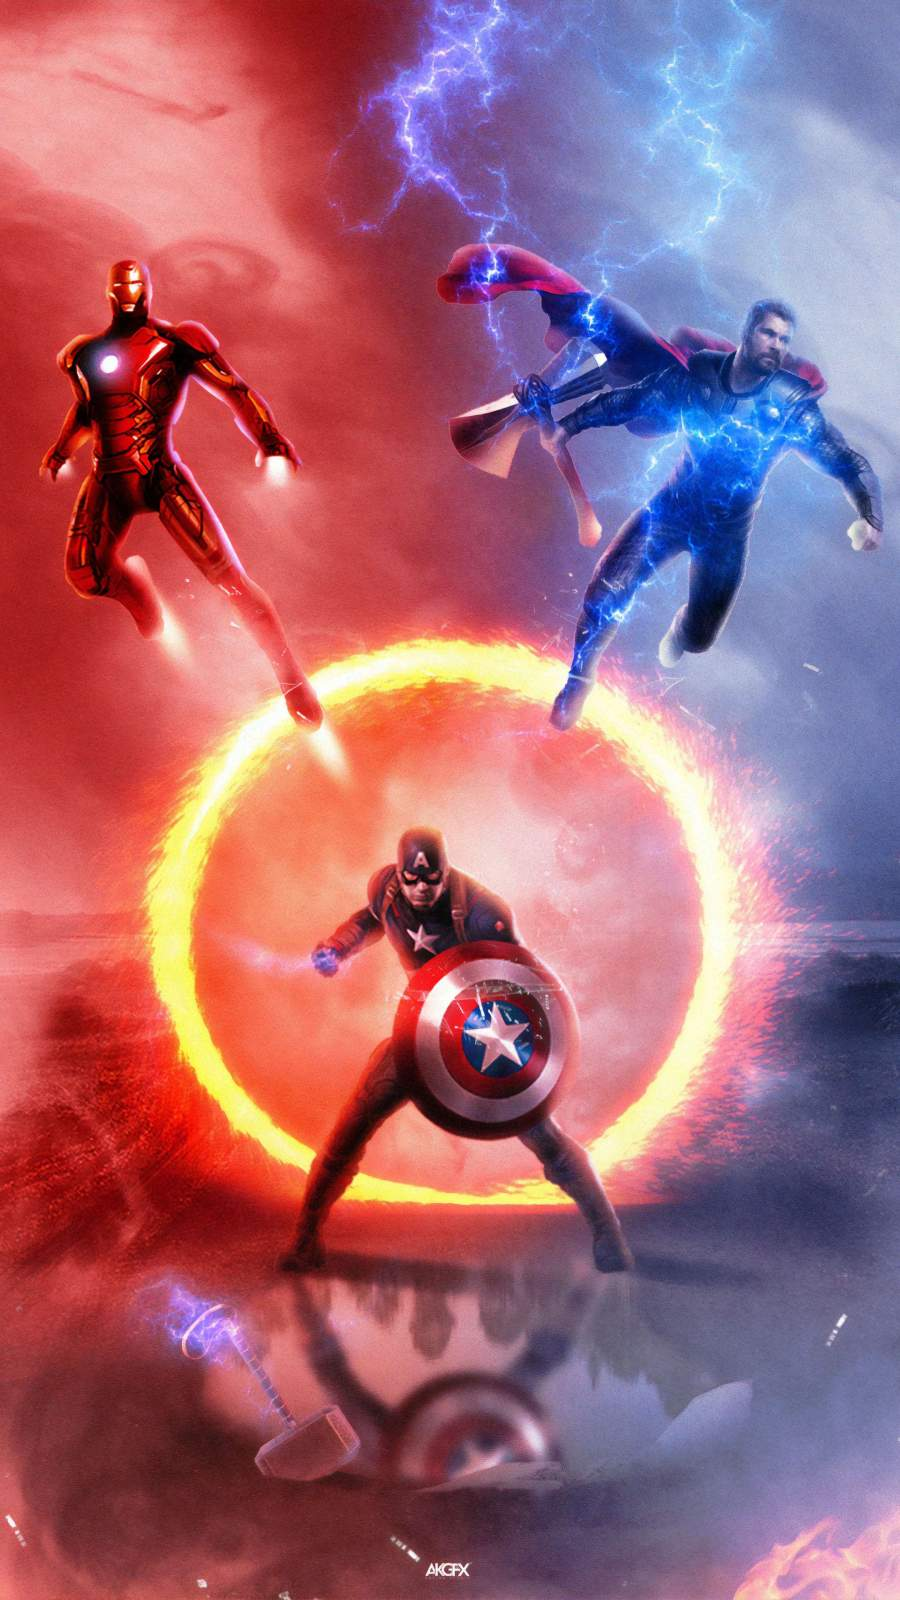 Avengers Endgame Trinity iPhone Wallpaper